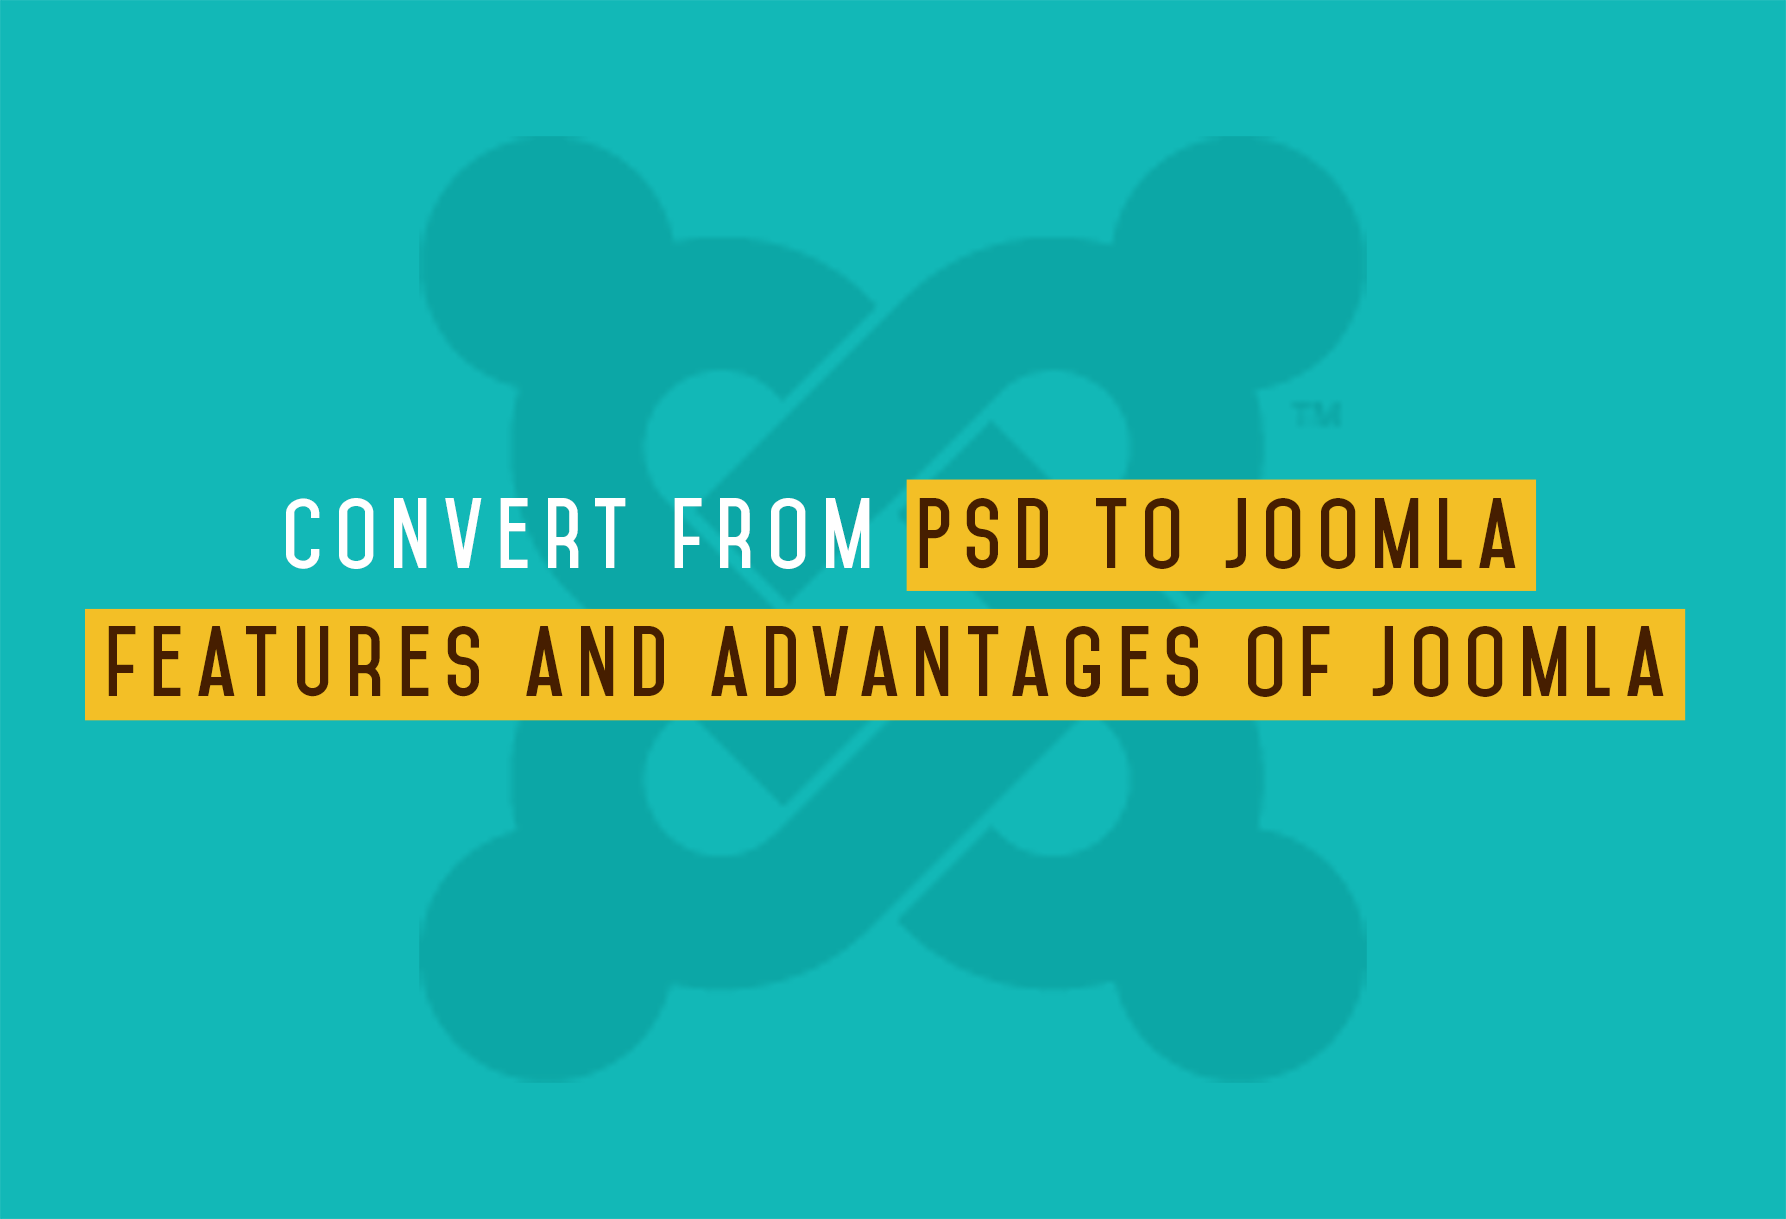 Convert from PSD to Joomla- features and advantages of Joomla